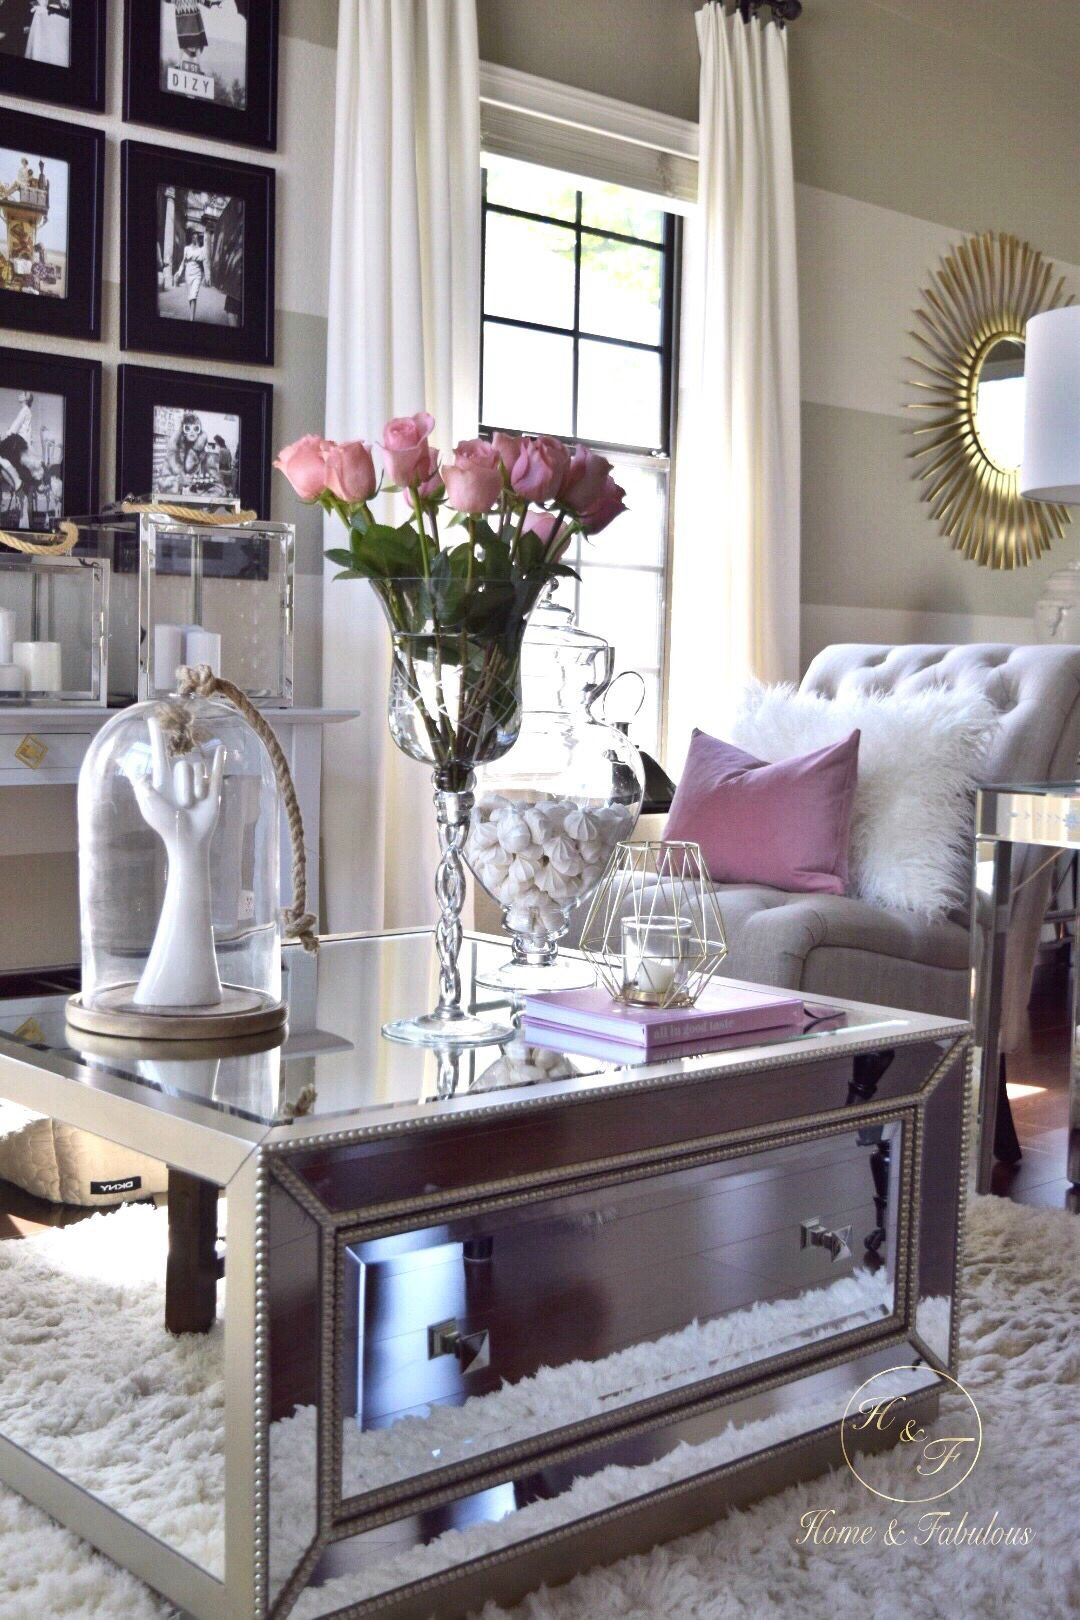 Table Decorating Ideas Living Room Home and Fabulous In 2019 Dream Home